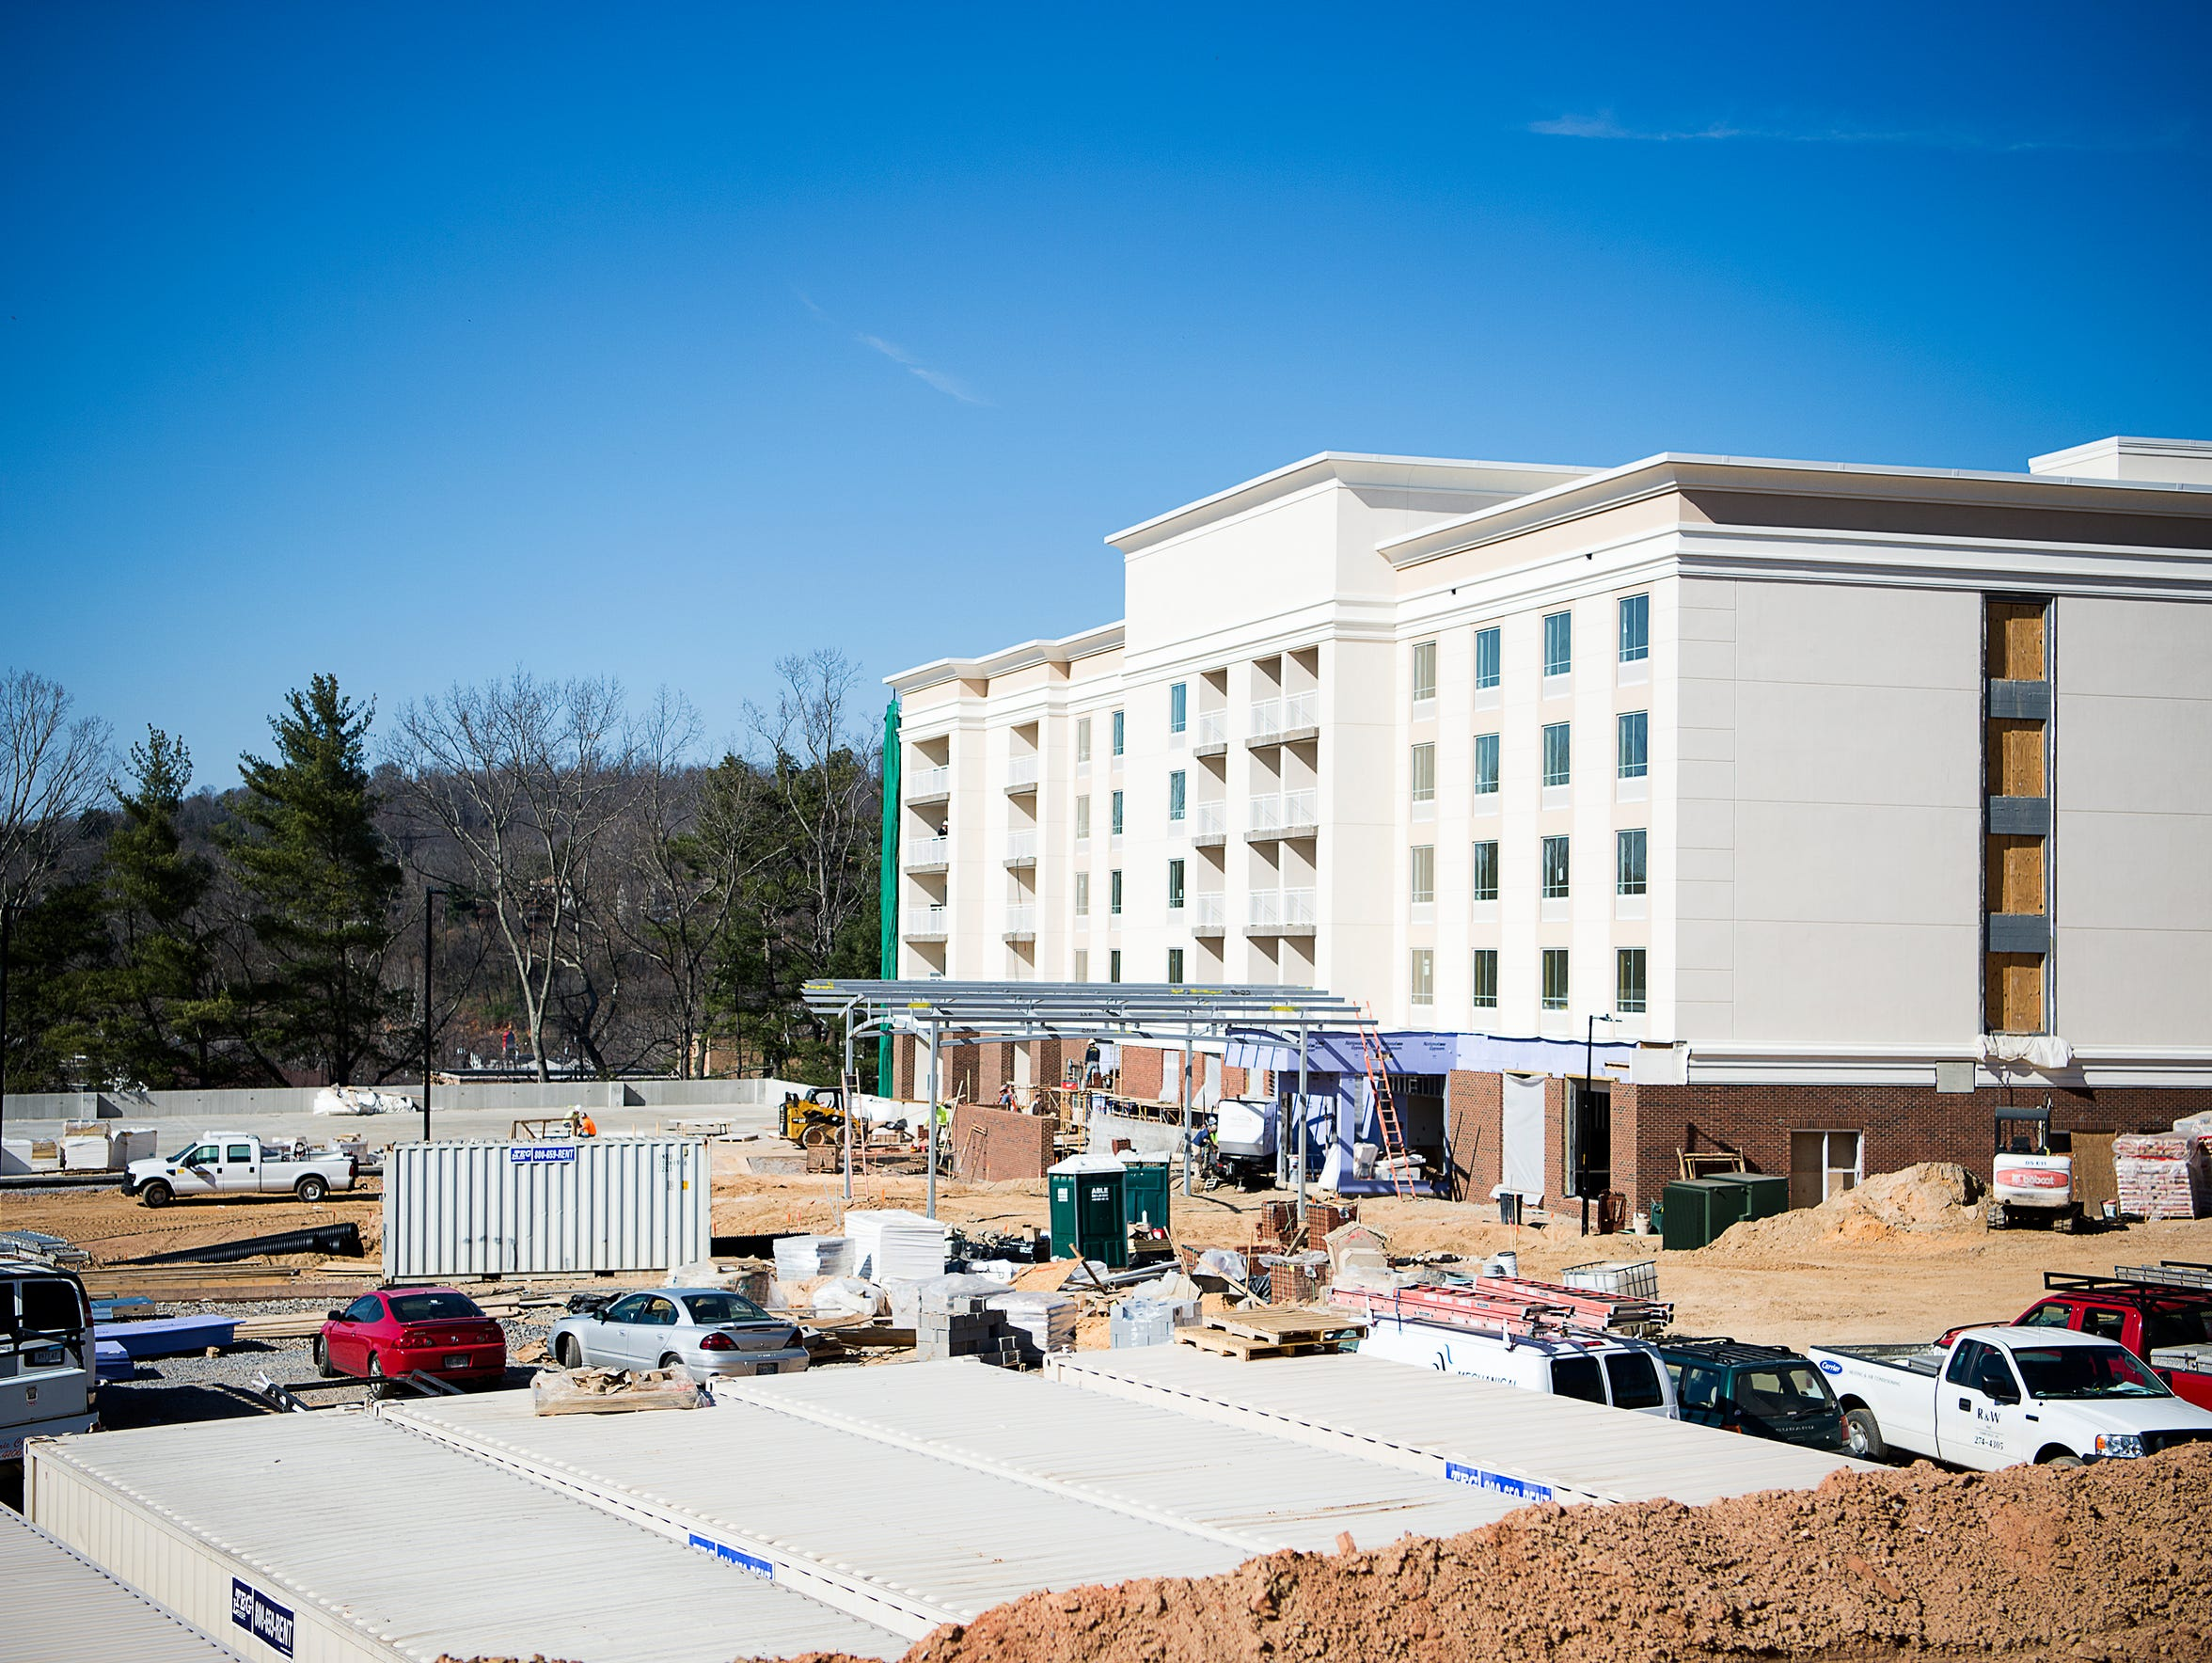 Construction on the six-story, Holiday Inn and Suites